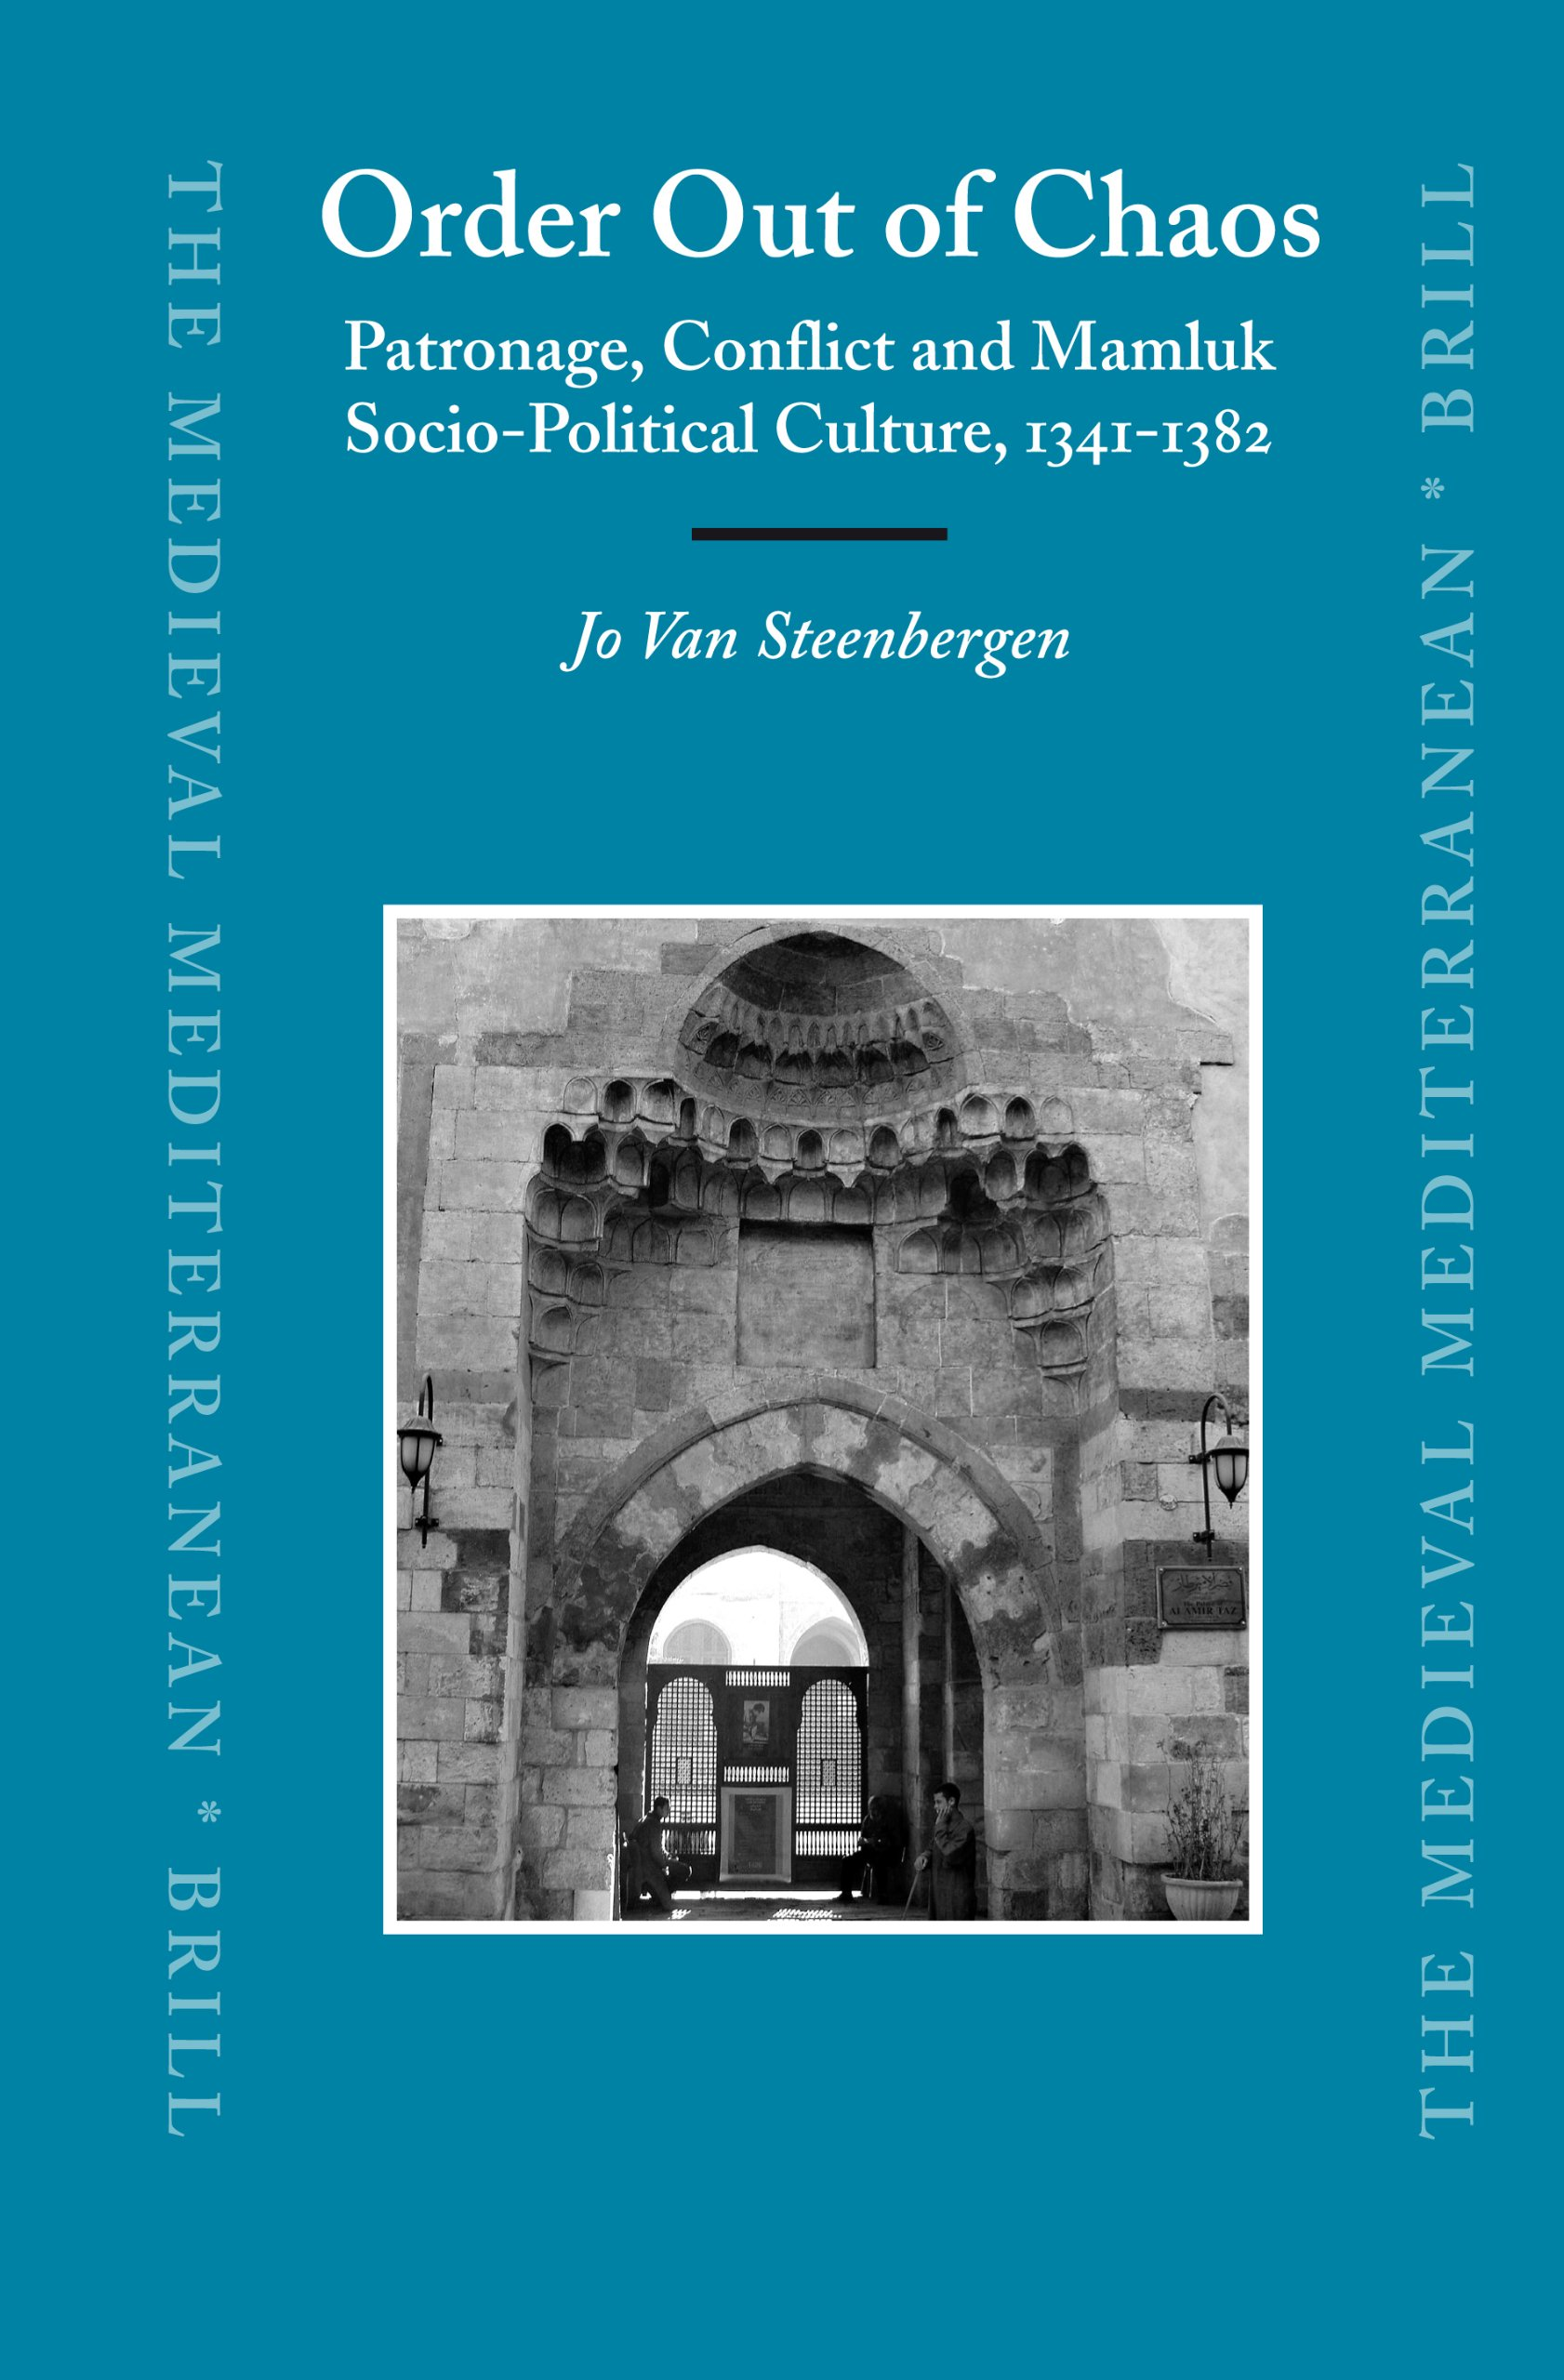 Order Out of Chaos: Patronage, Conflict and Mamluk Socio-Political Culture, 1341-1382 (The Medieval Mediterranean) by Brill Academic Publishers